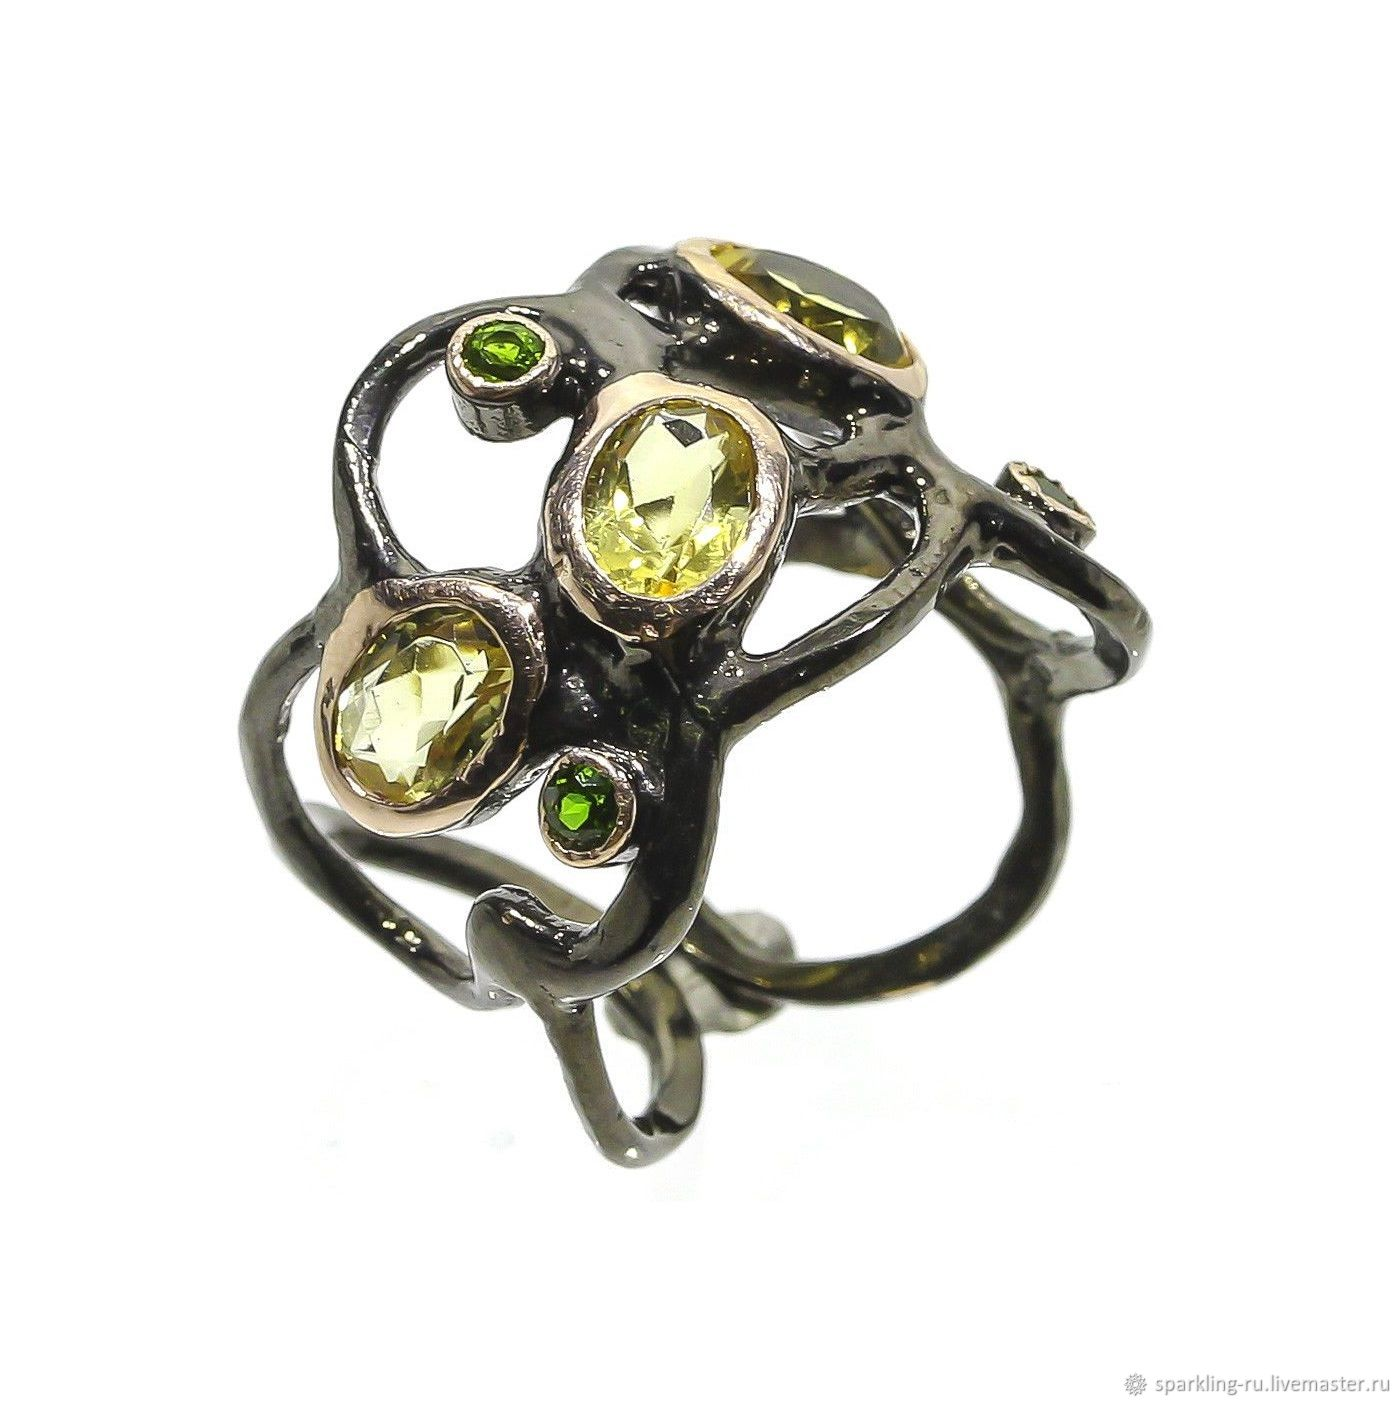 Silver ring with citrine, dimensionless, Rings, Moscow,  Фото №1